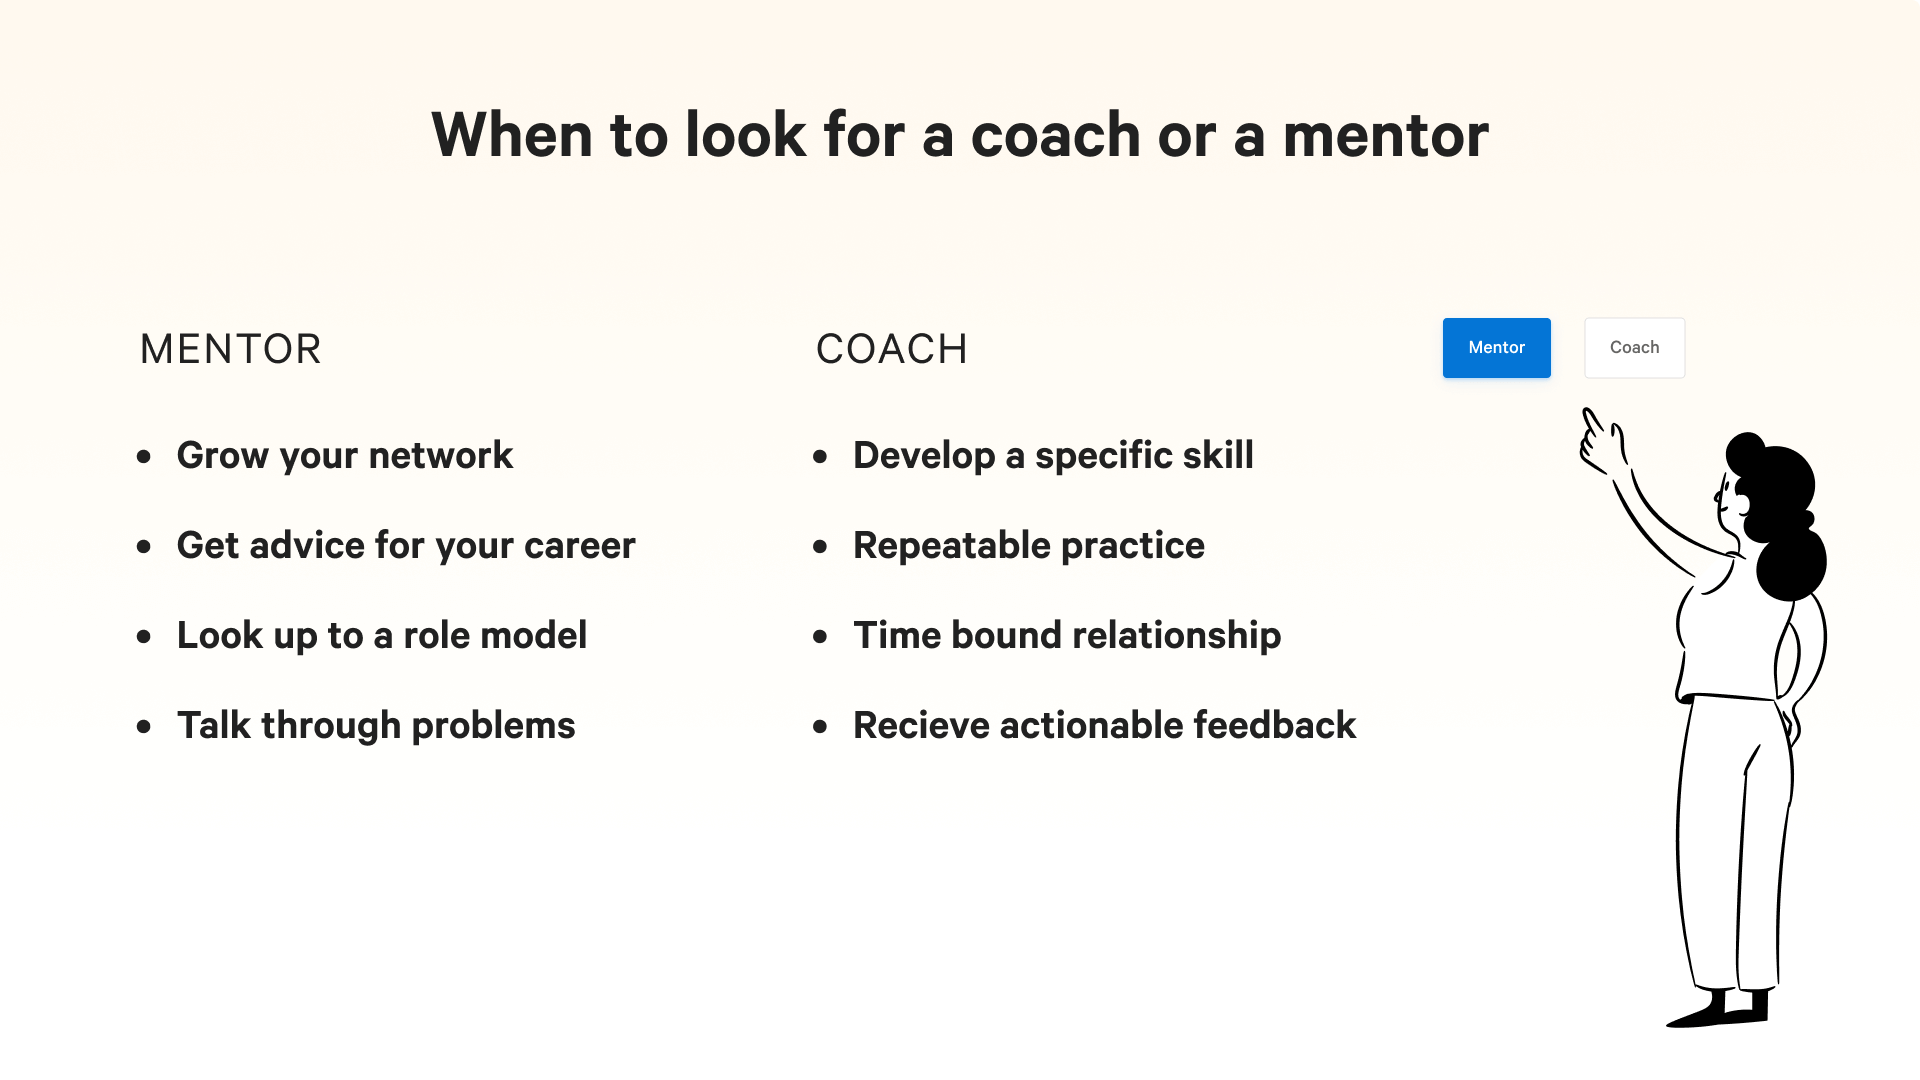 coach s mentor: when to look for each.